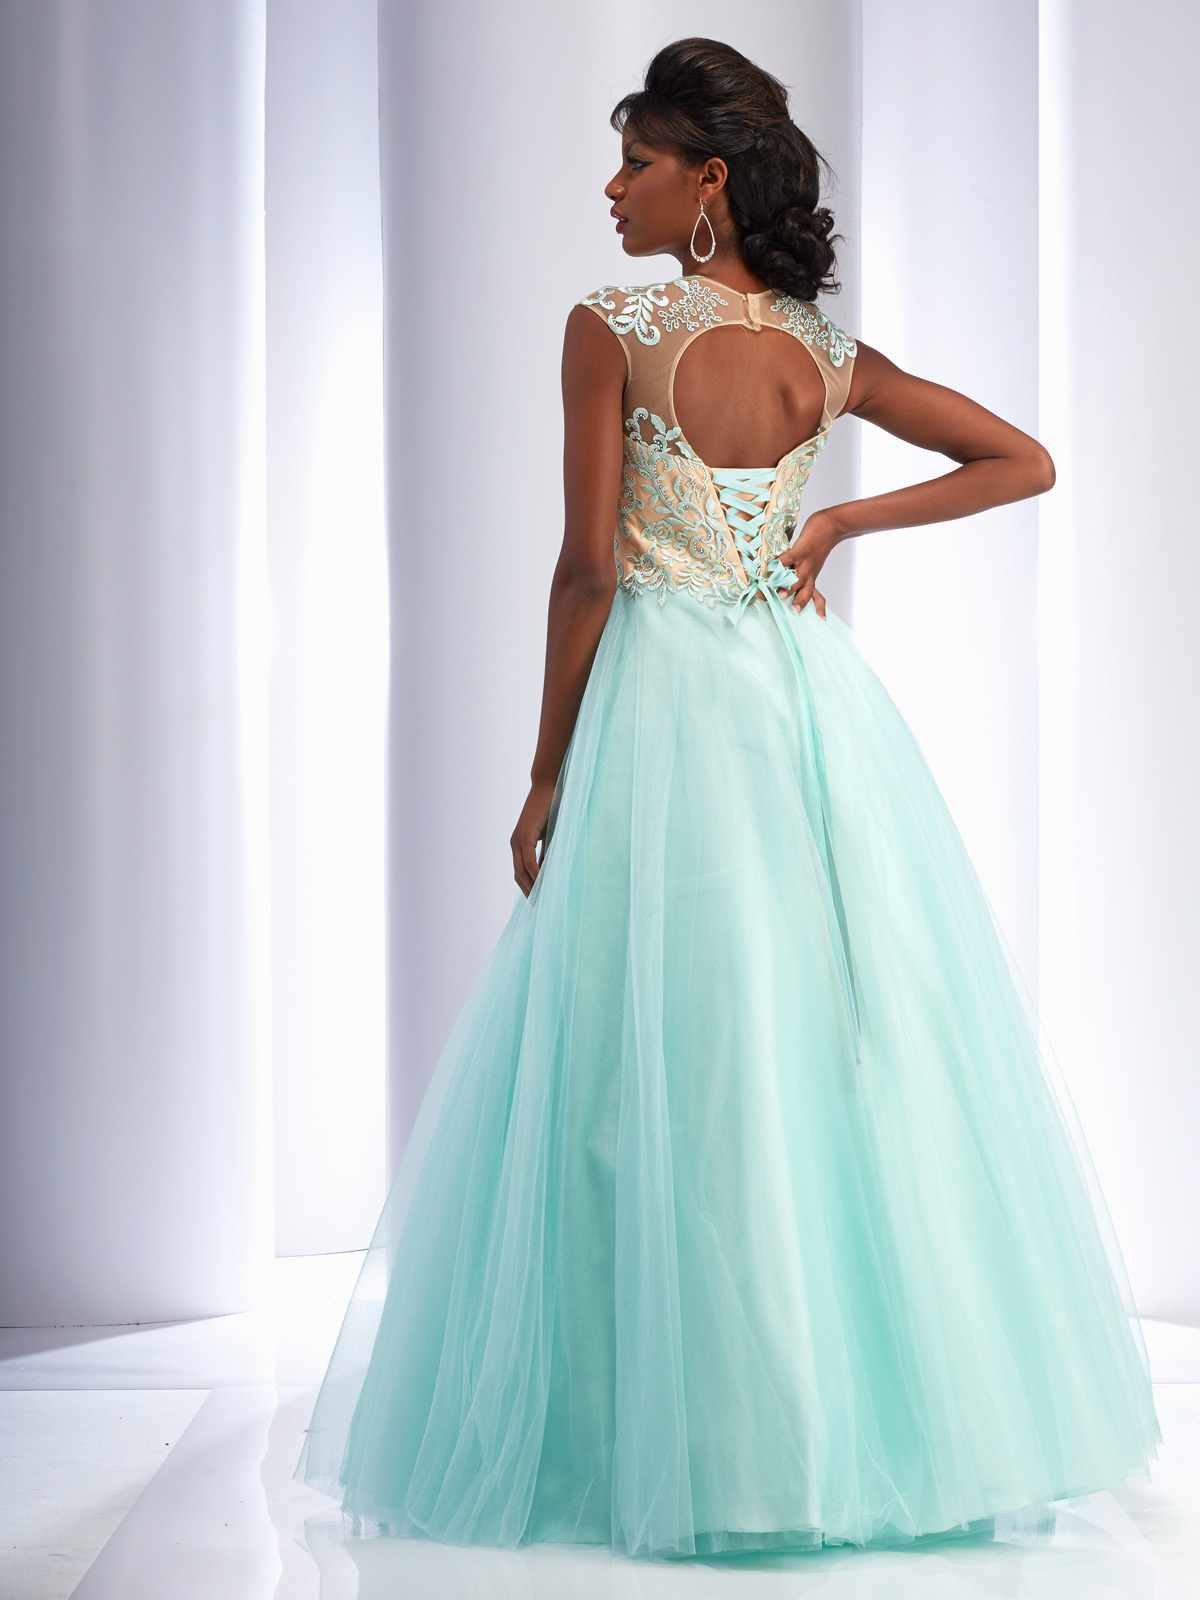 Clarisse 2701 Prom Dress | Promgirl.net